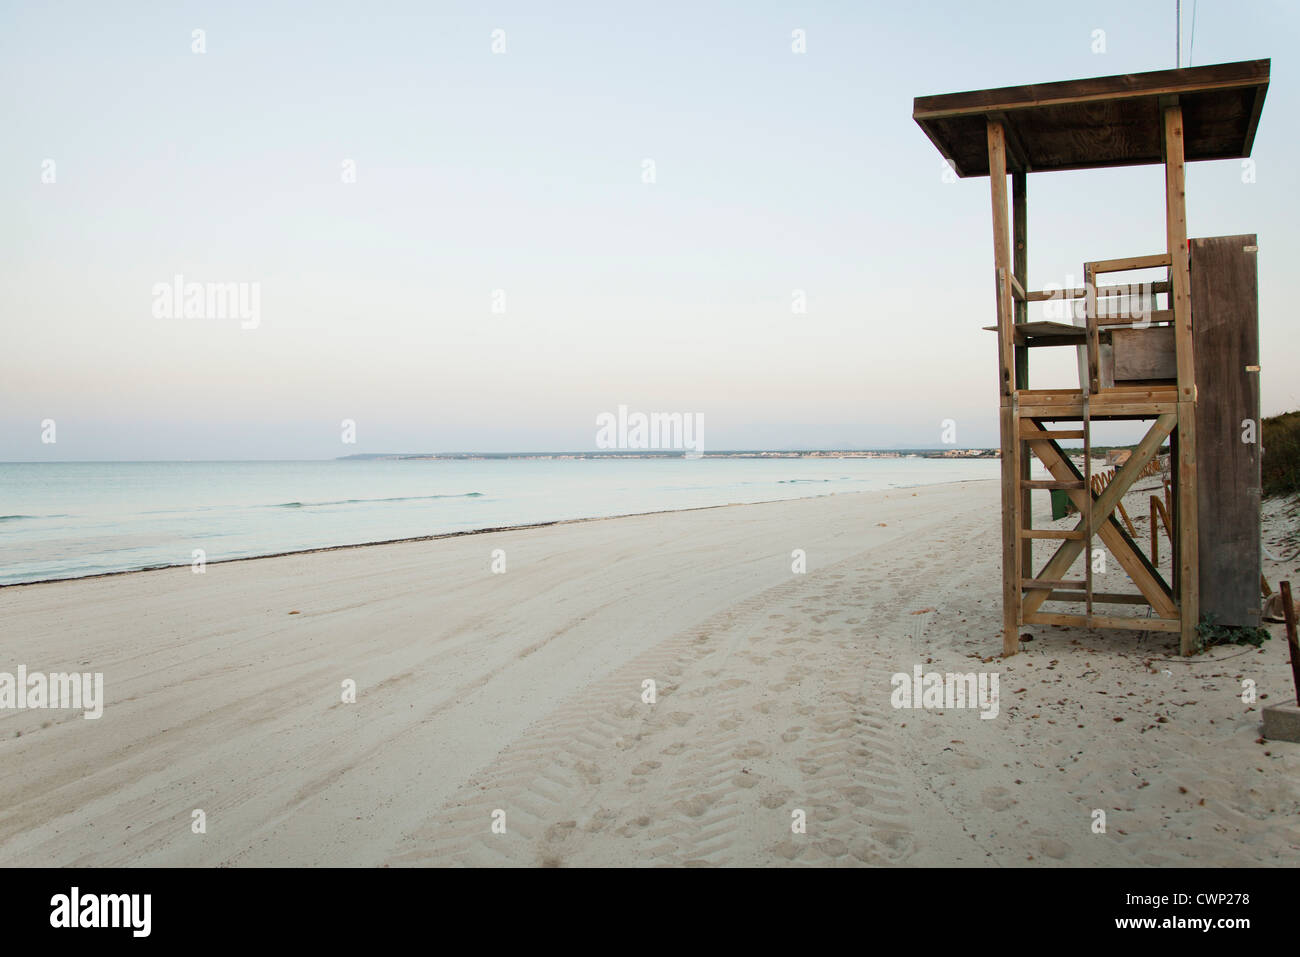 Lifeguard stand on deserted beach - Stock Image